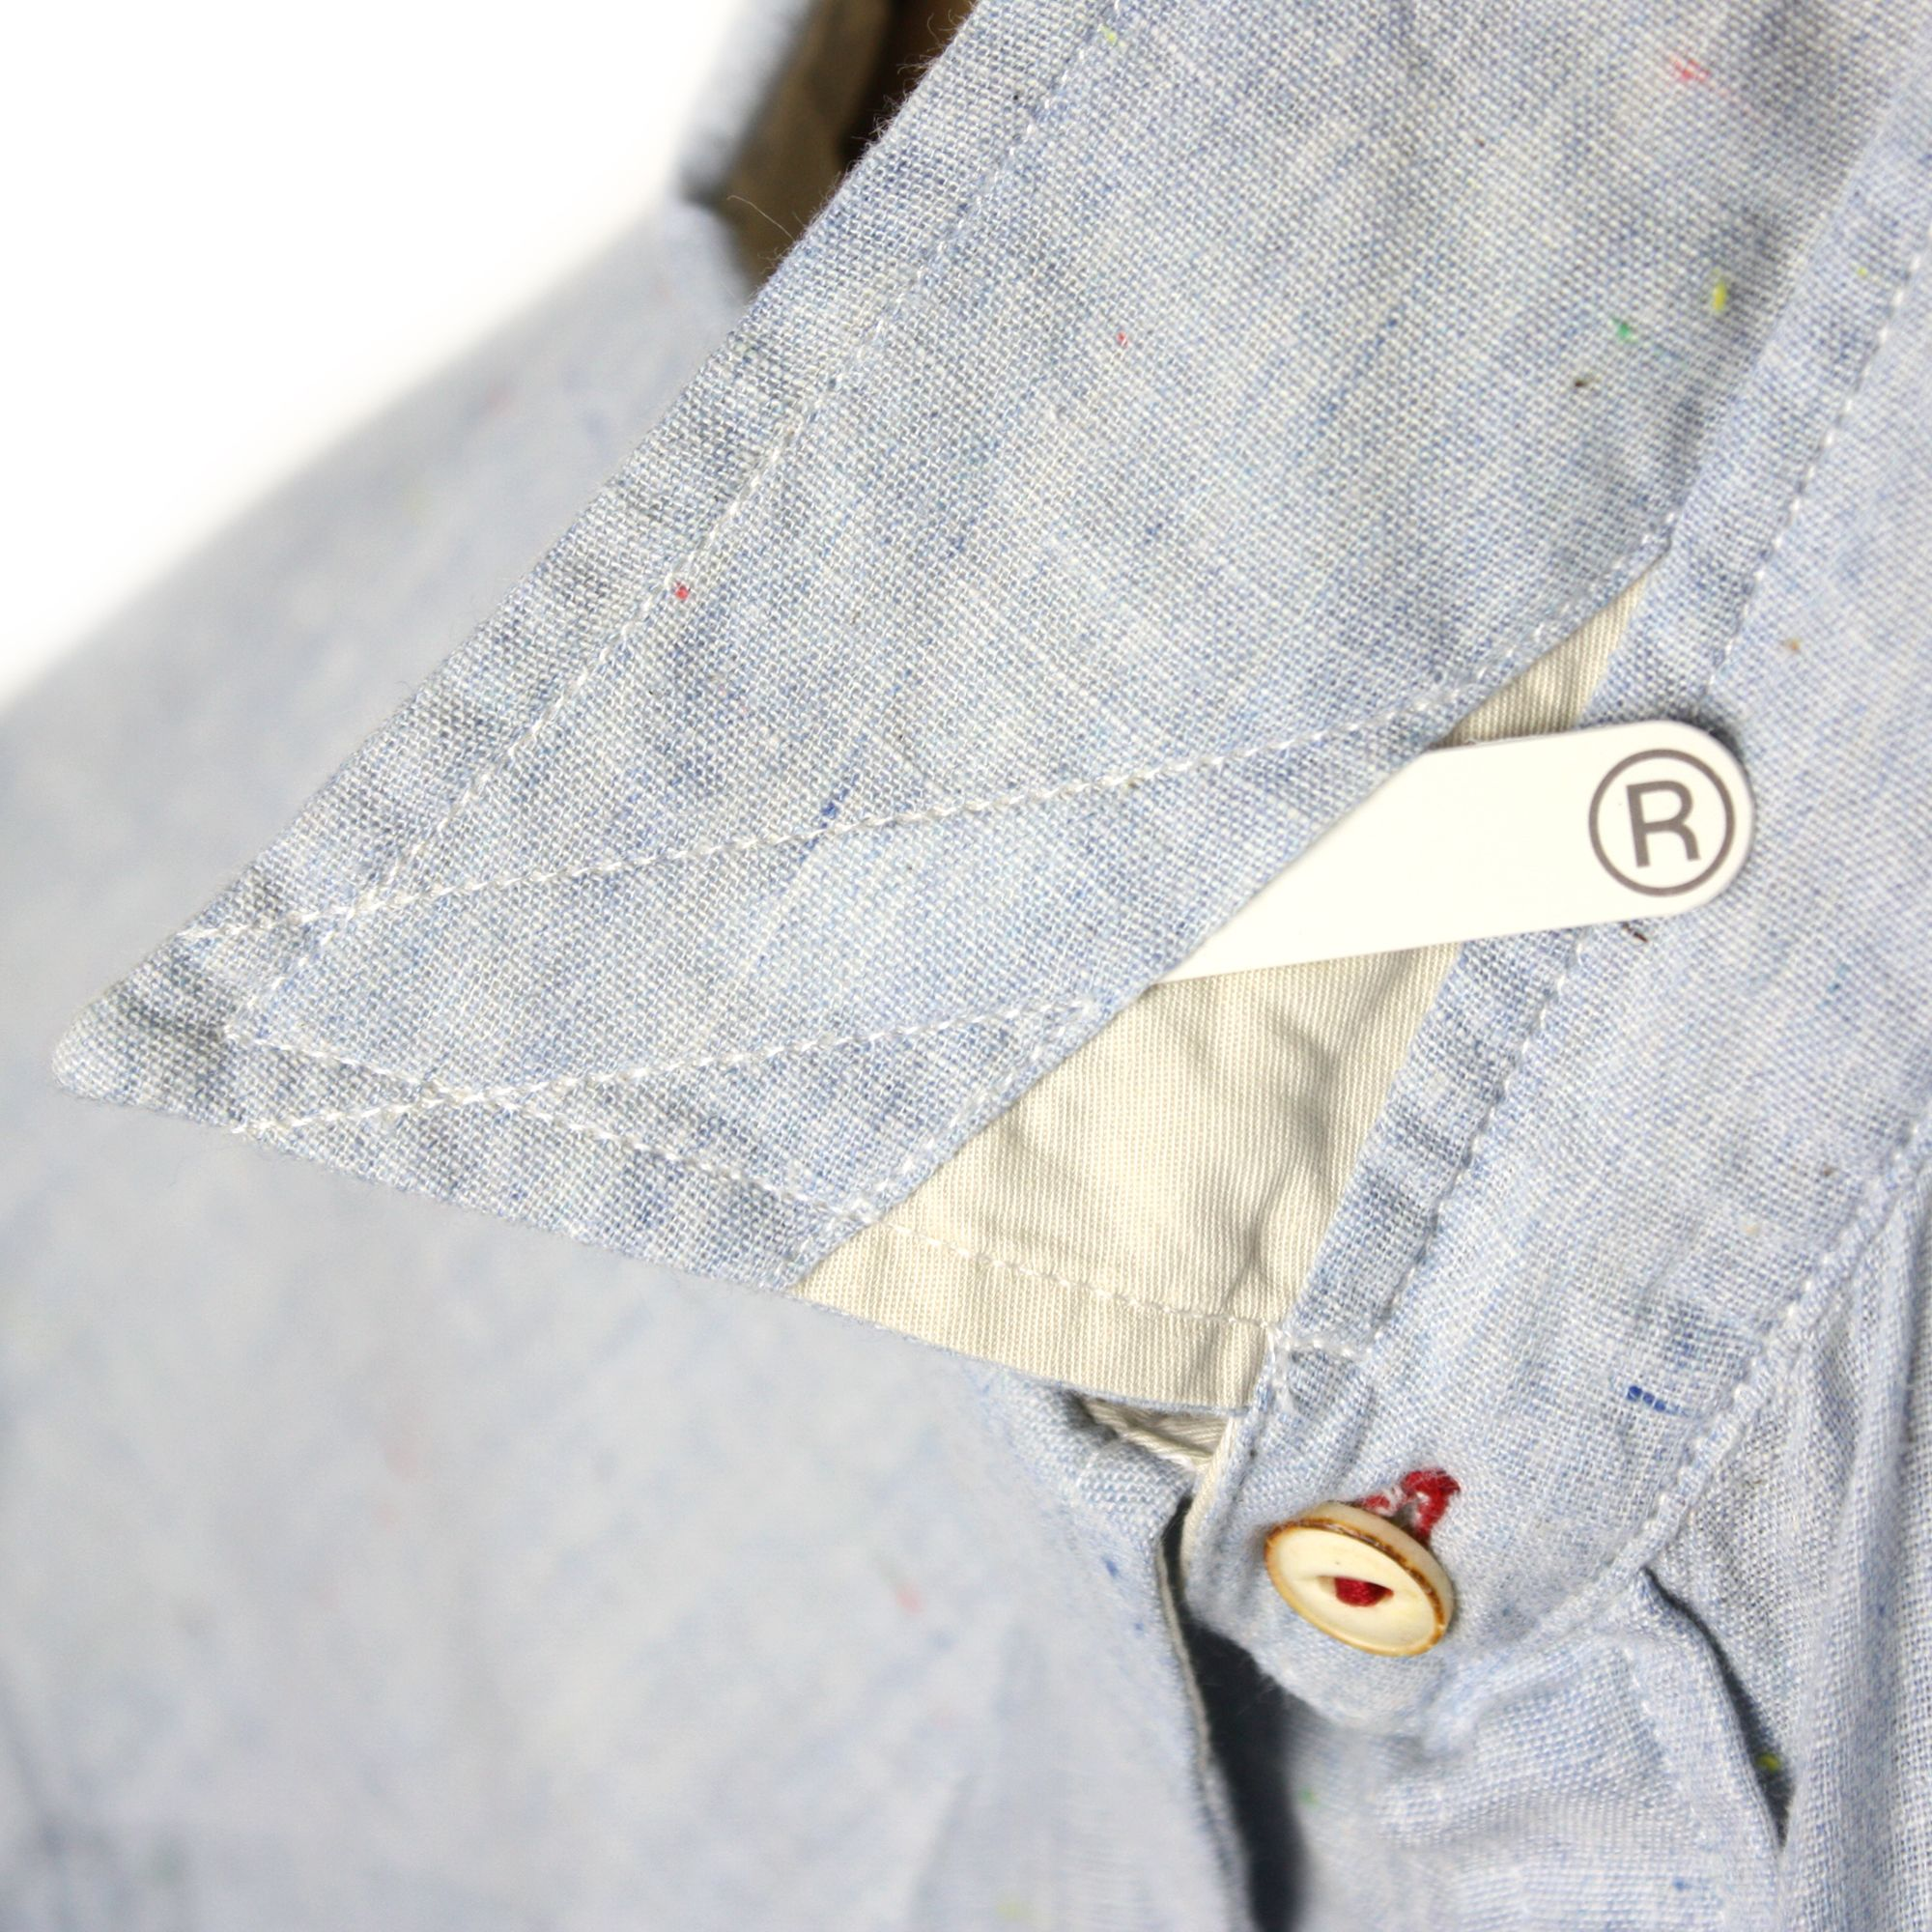 Shirt Detail Removable Collar Stays Detail In 2018